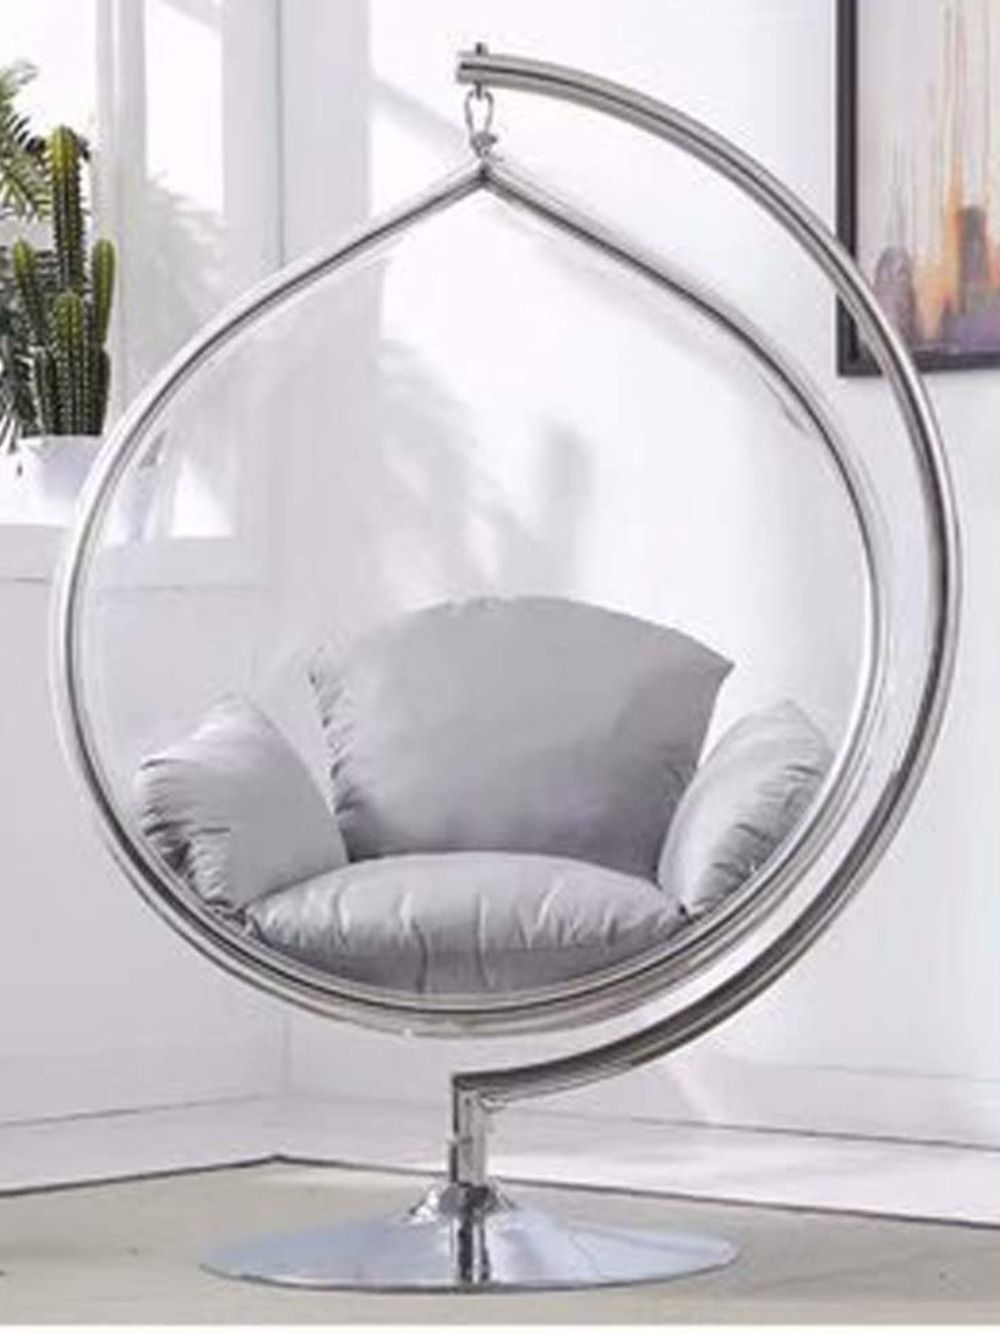 Acrylic Bubble Hanging Chair For Modern Decor In 2020 Hanging Chair Chair Modern Decor